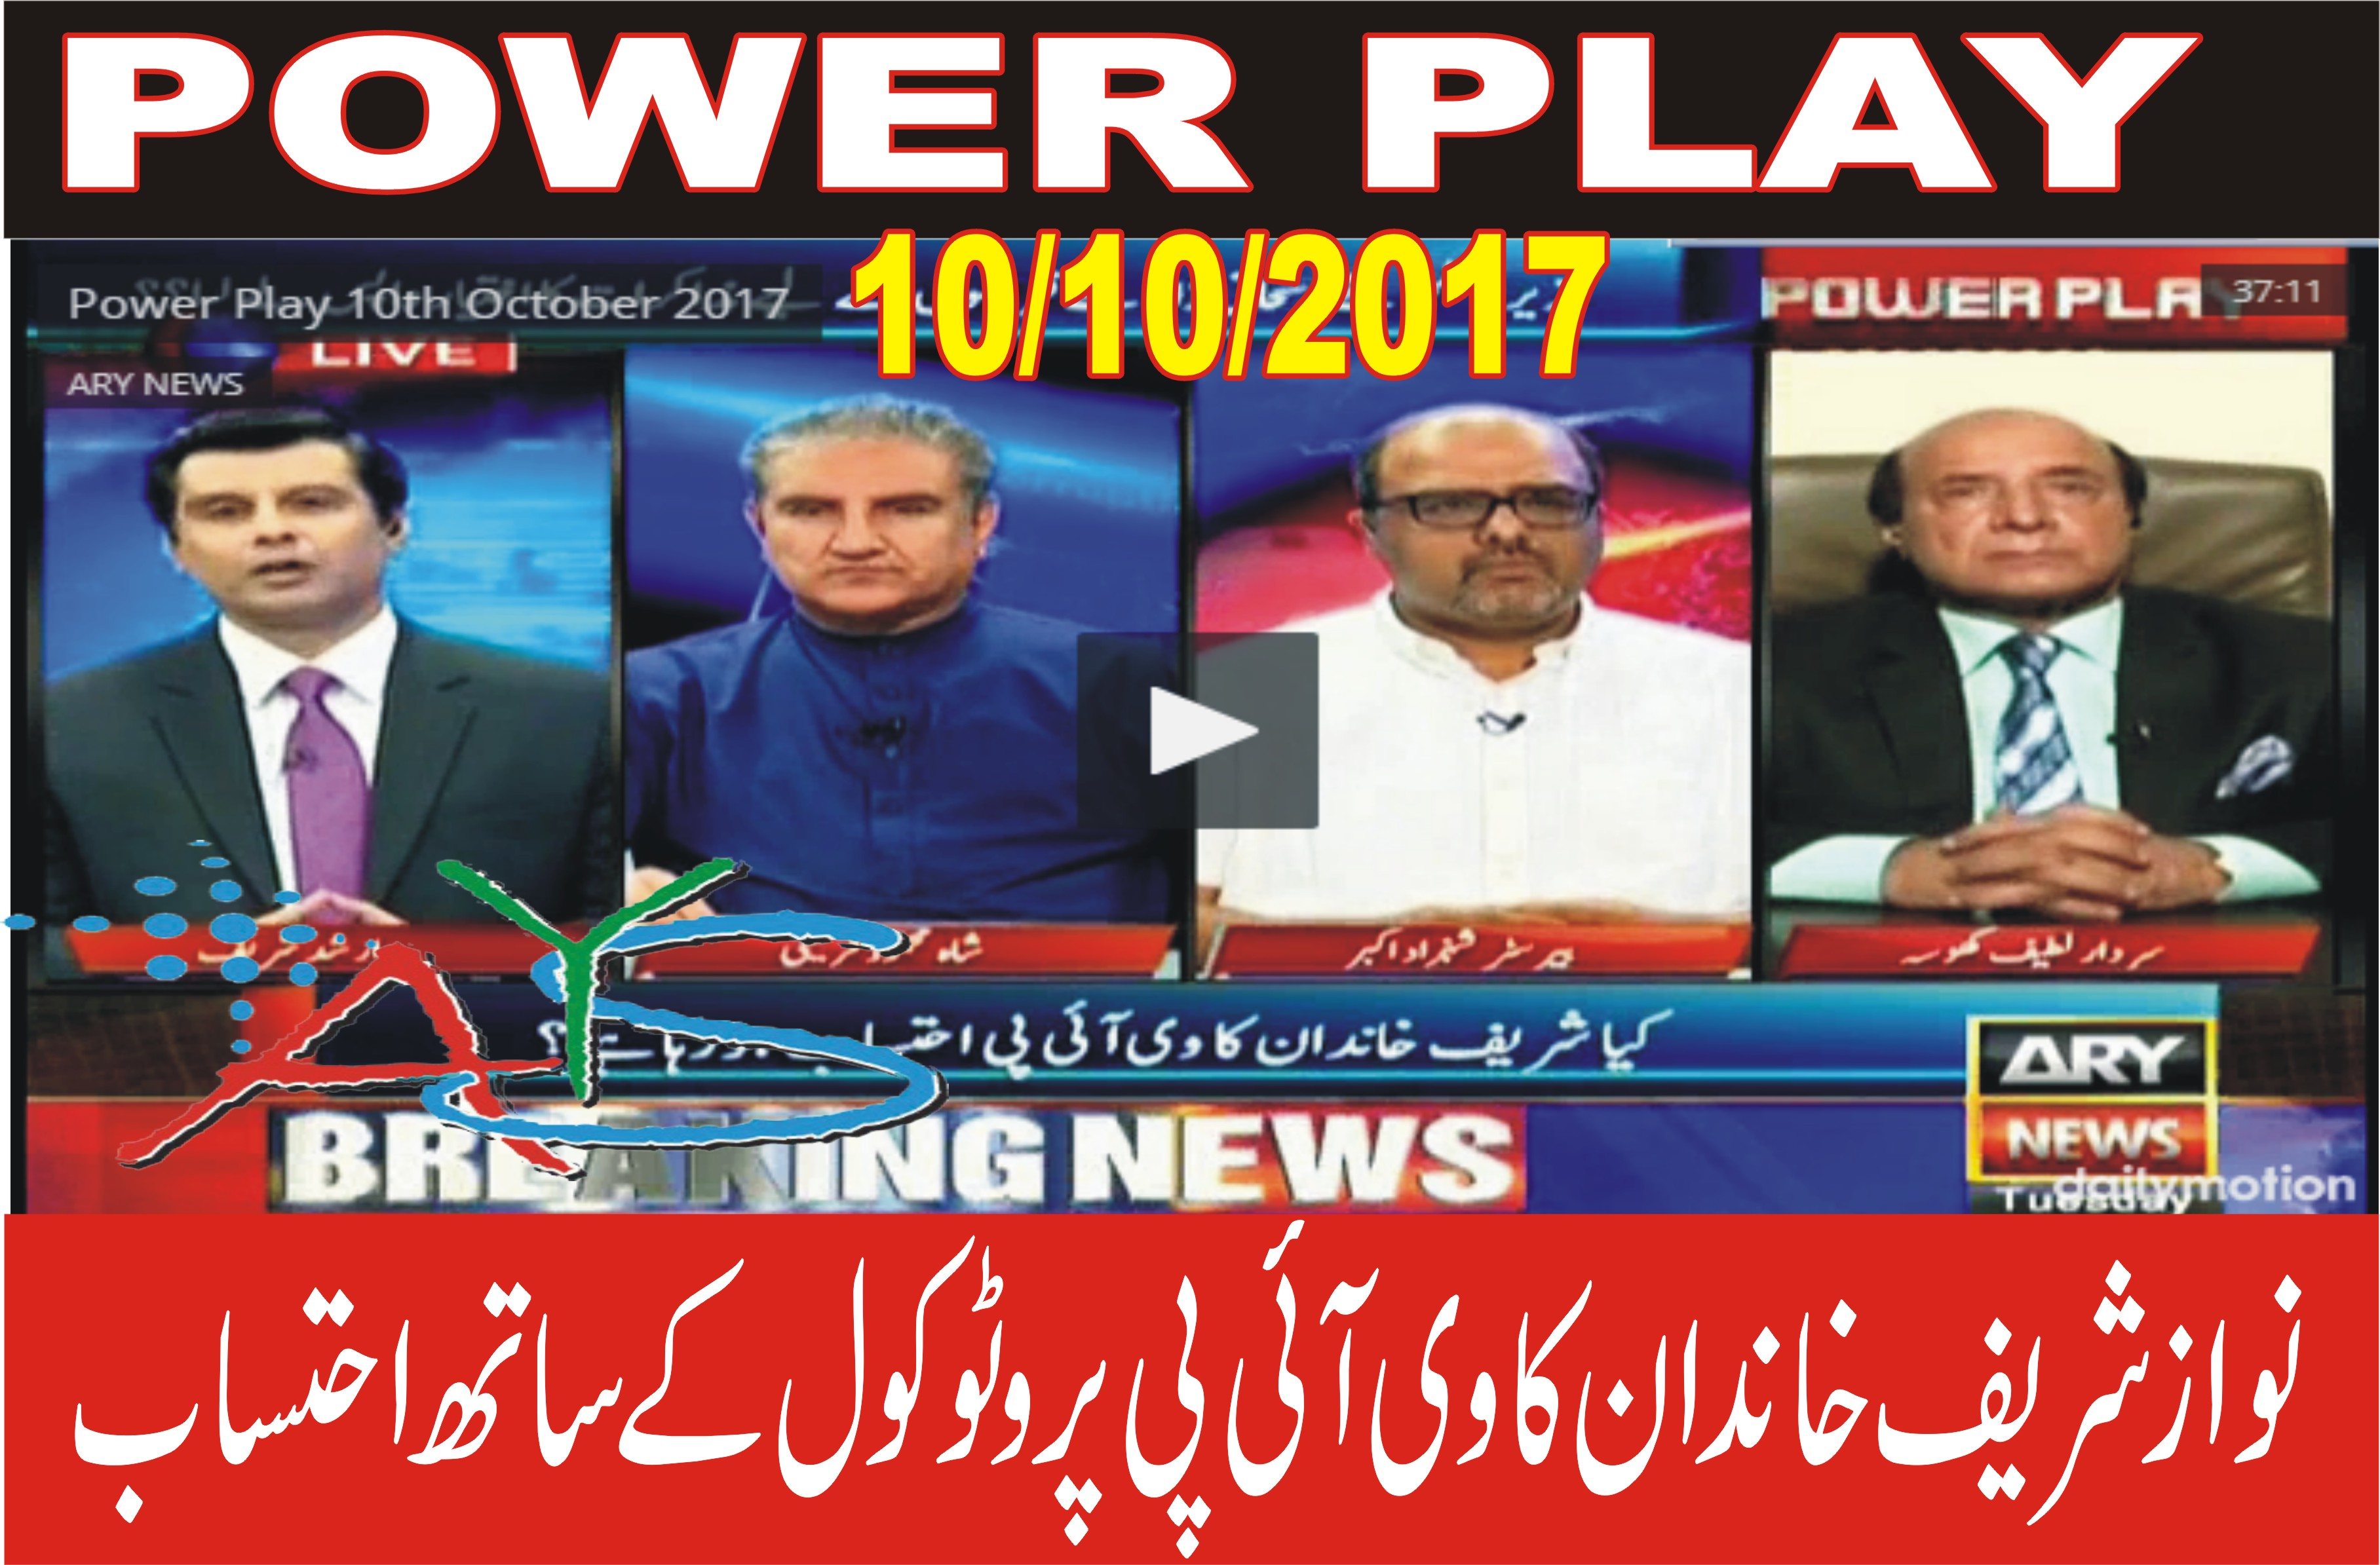 10 Oct 2017 - Sharif family Ka VIP Ehtisab